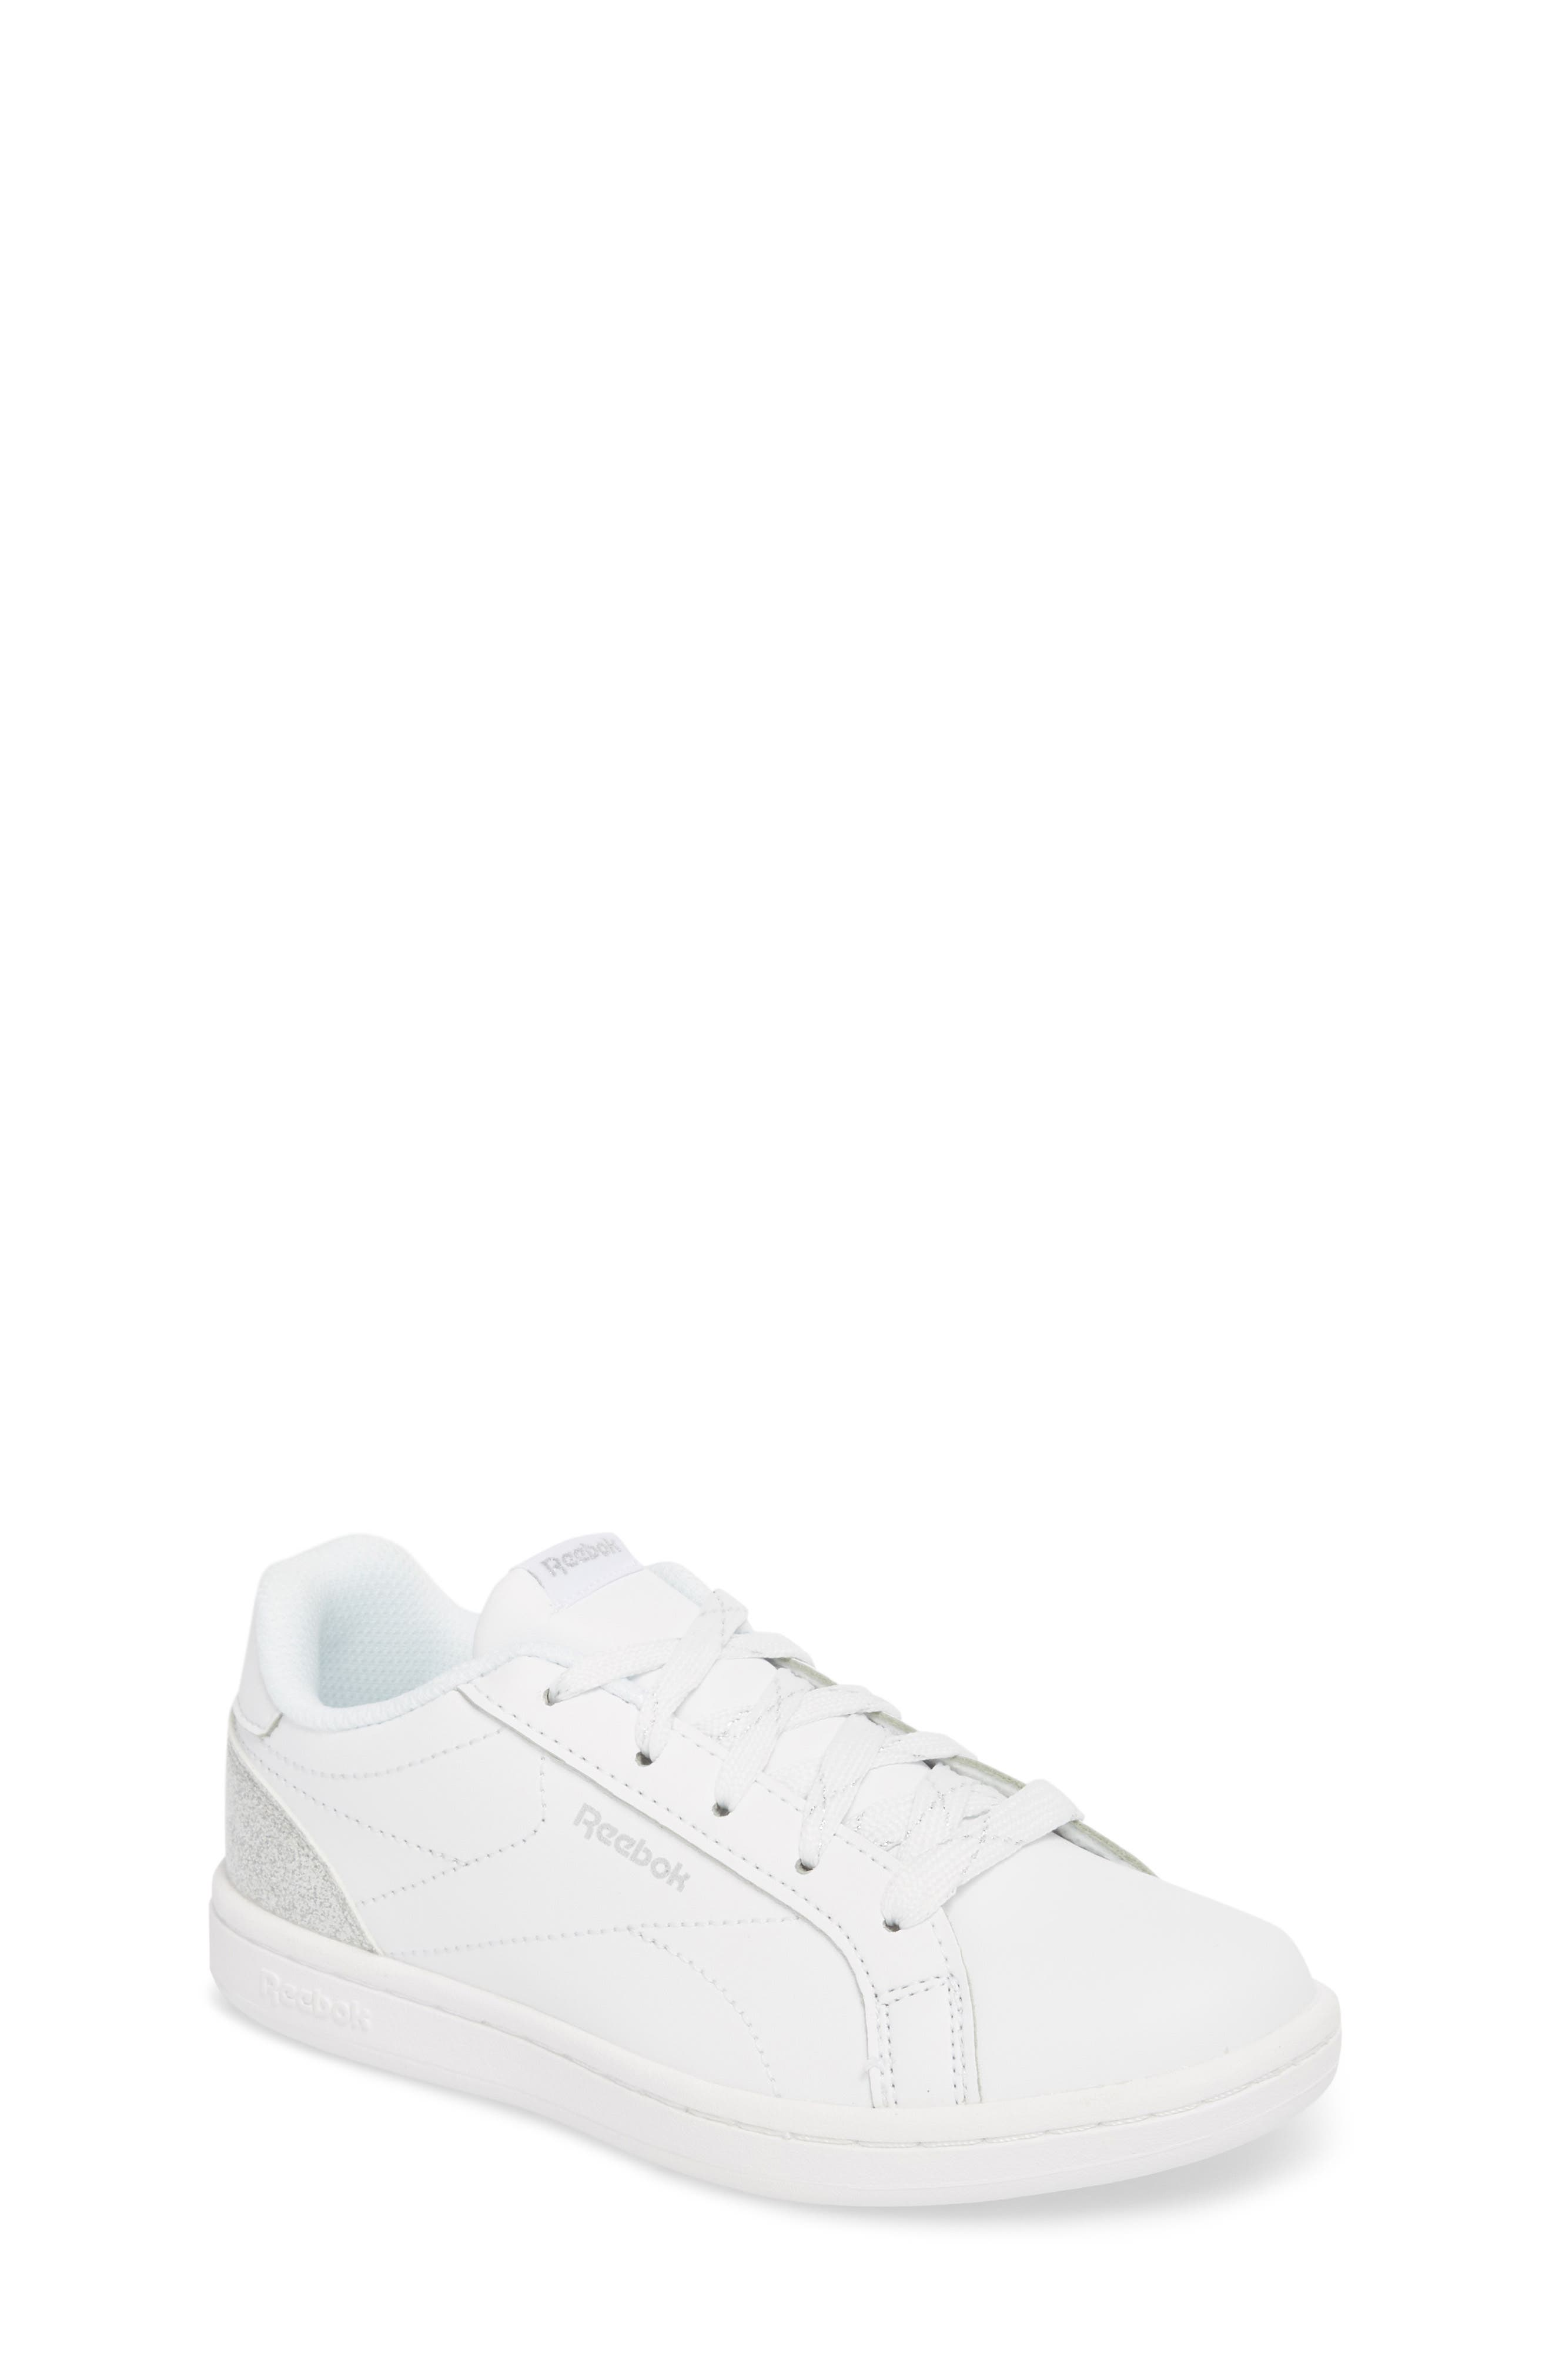 Royal Complete CLN Sneaker,                         Main,                         color, White